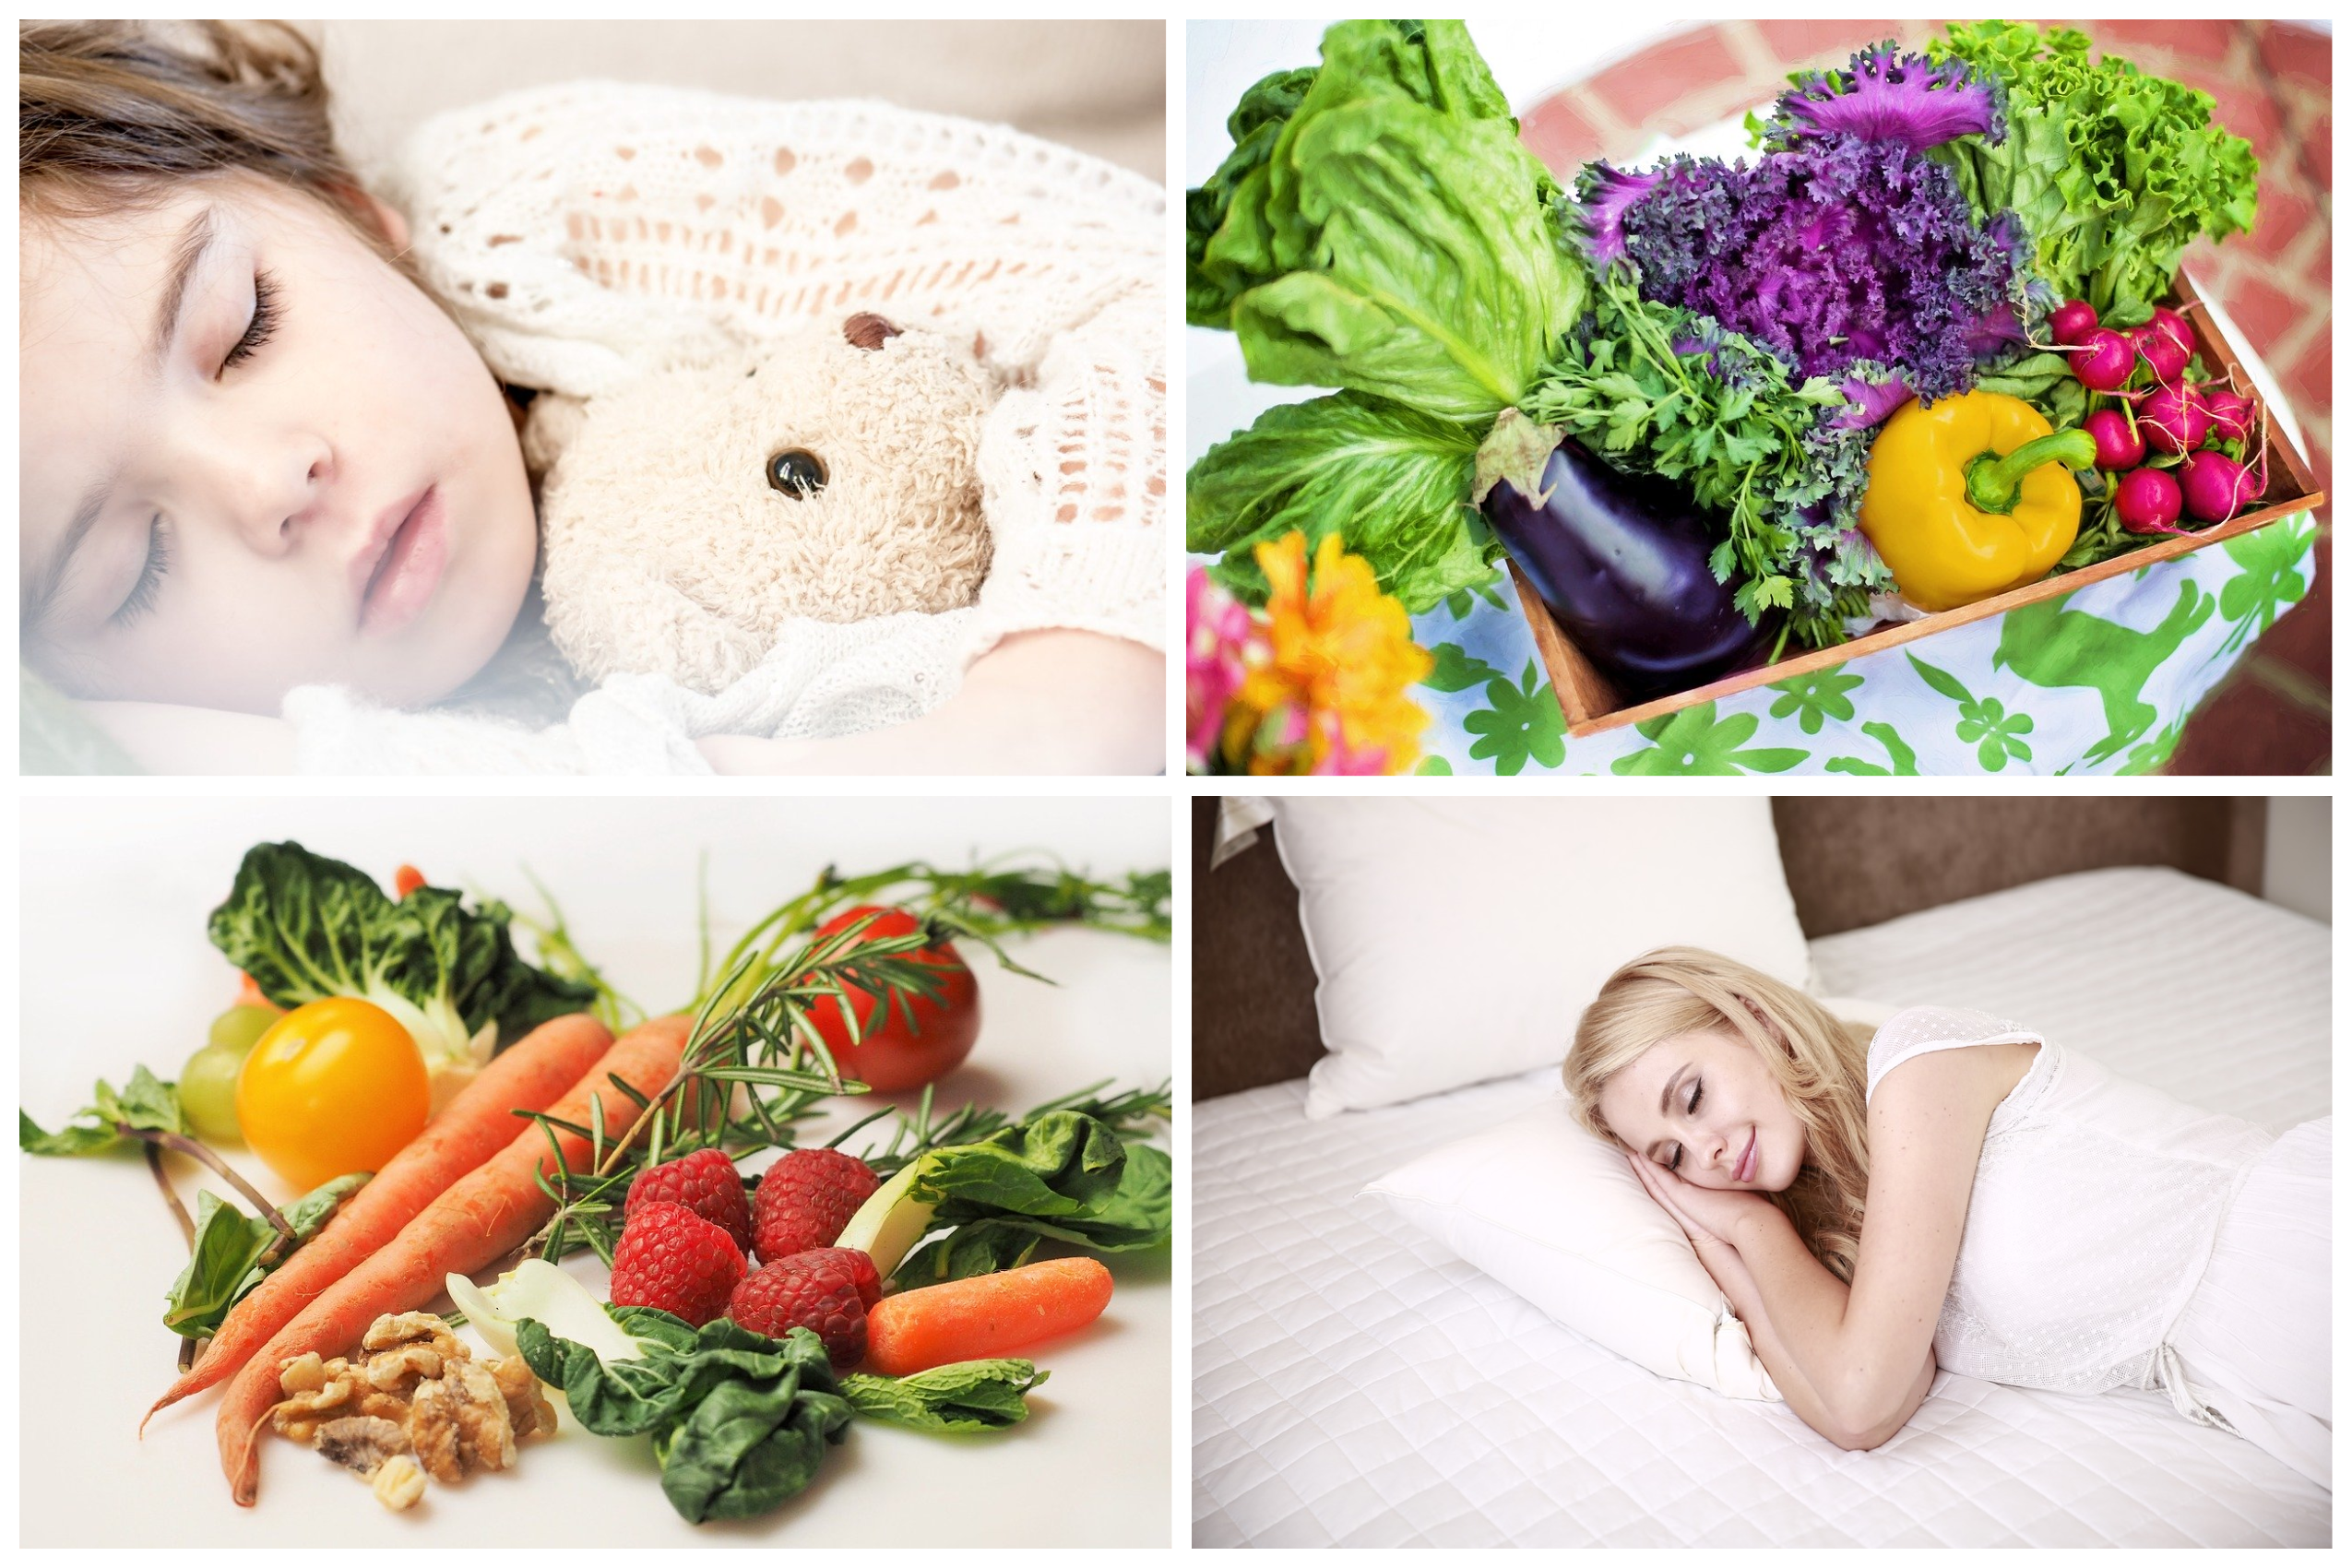 TOP 10 BEST FOOD TO EAT BEFORE BED FOR SOUND SLEEP